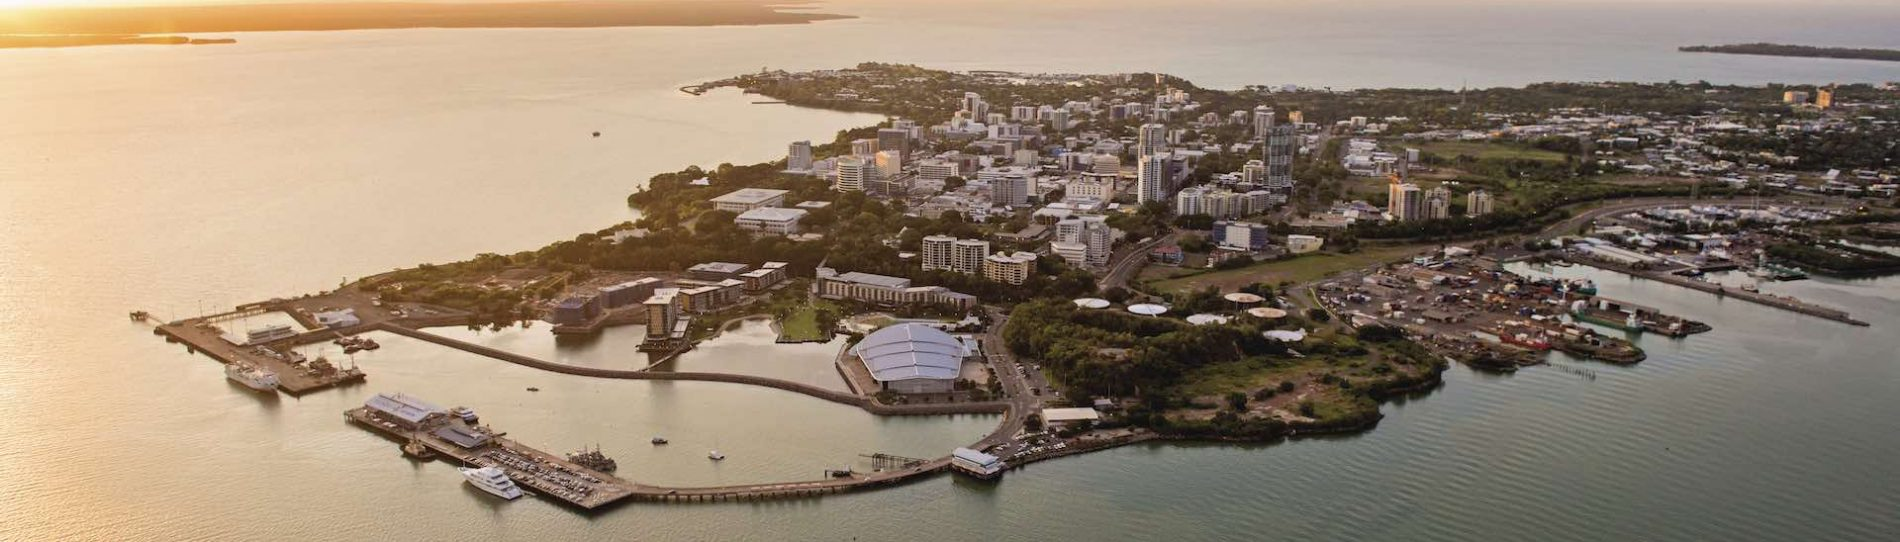 beautiful aerial photo of darwin city with water surrounds